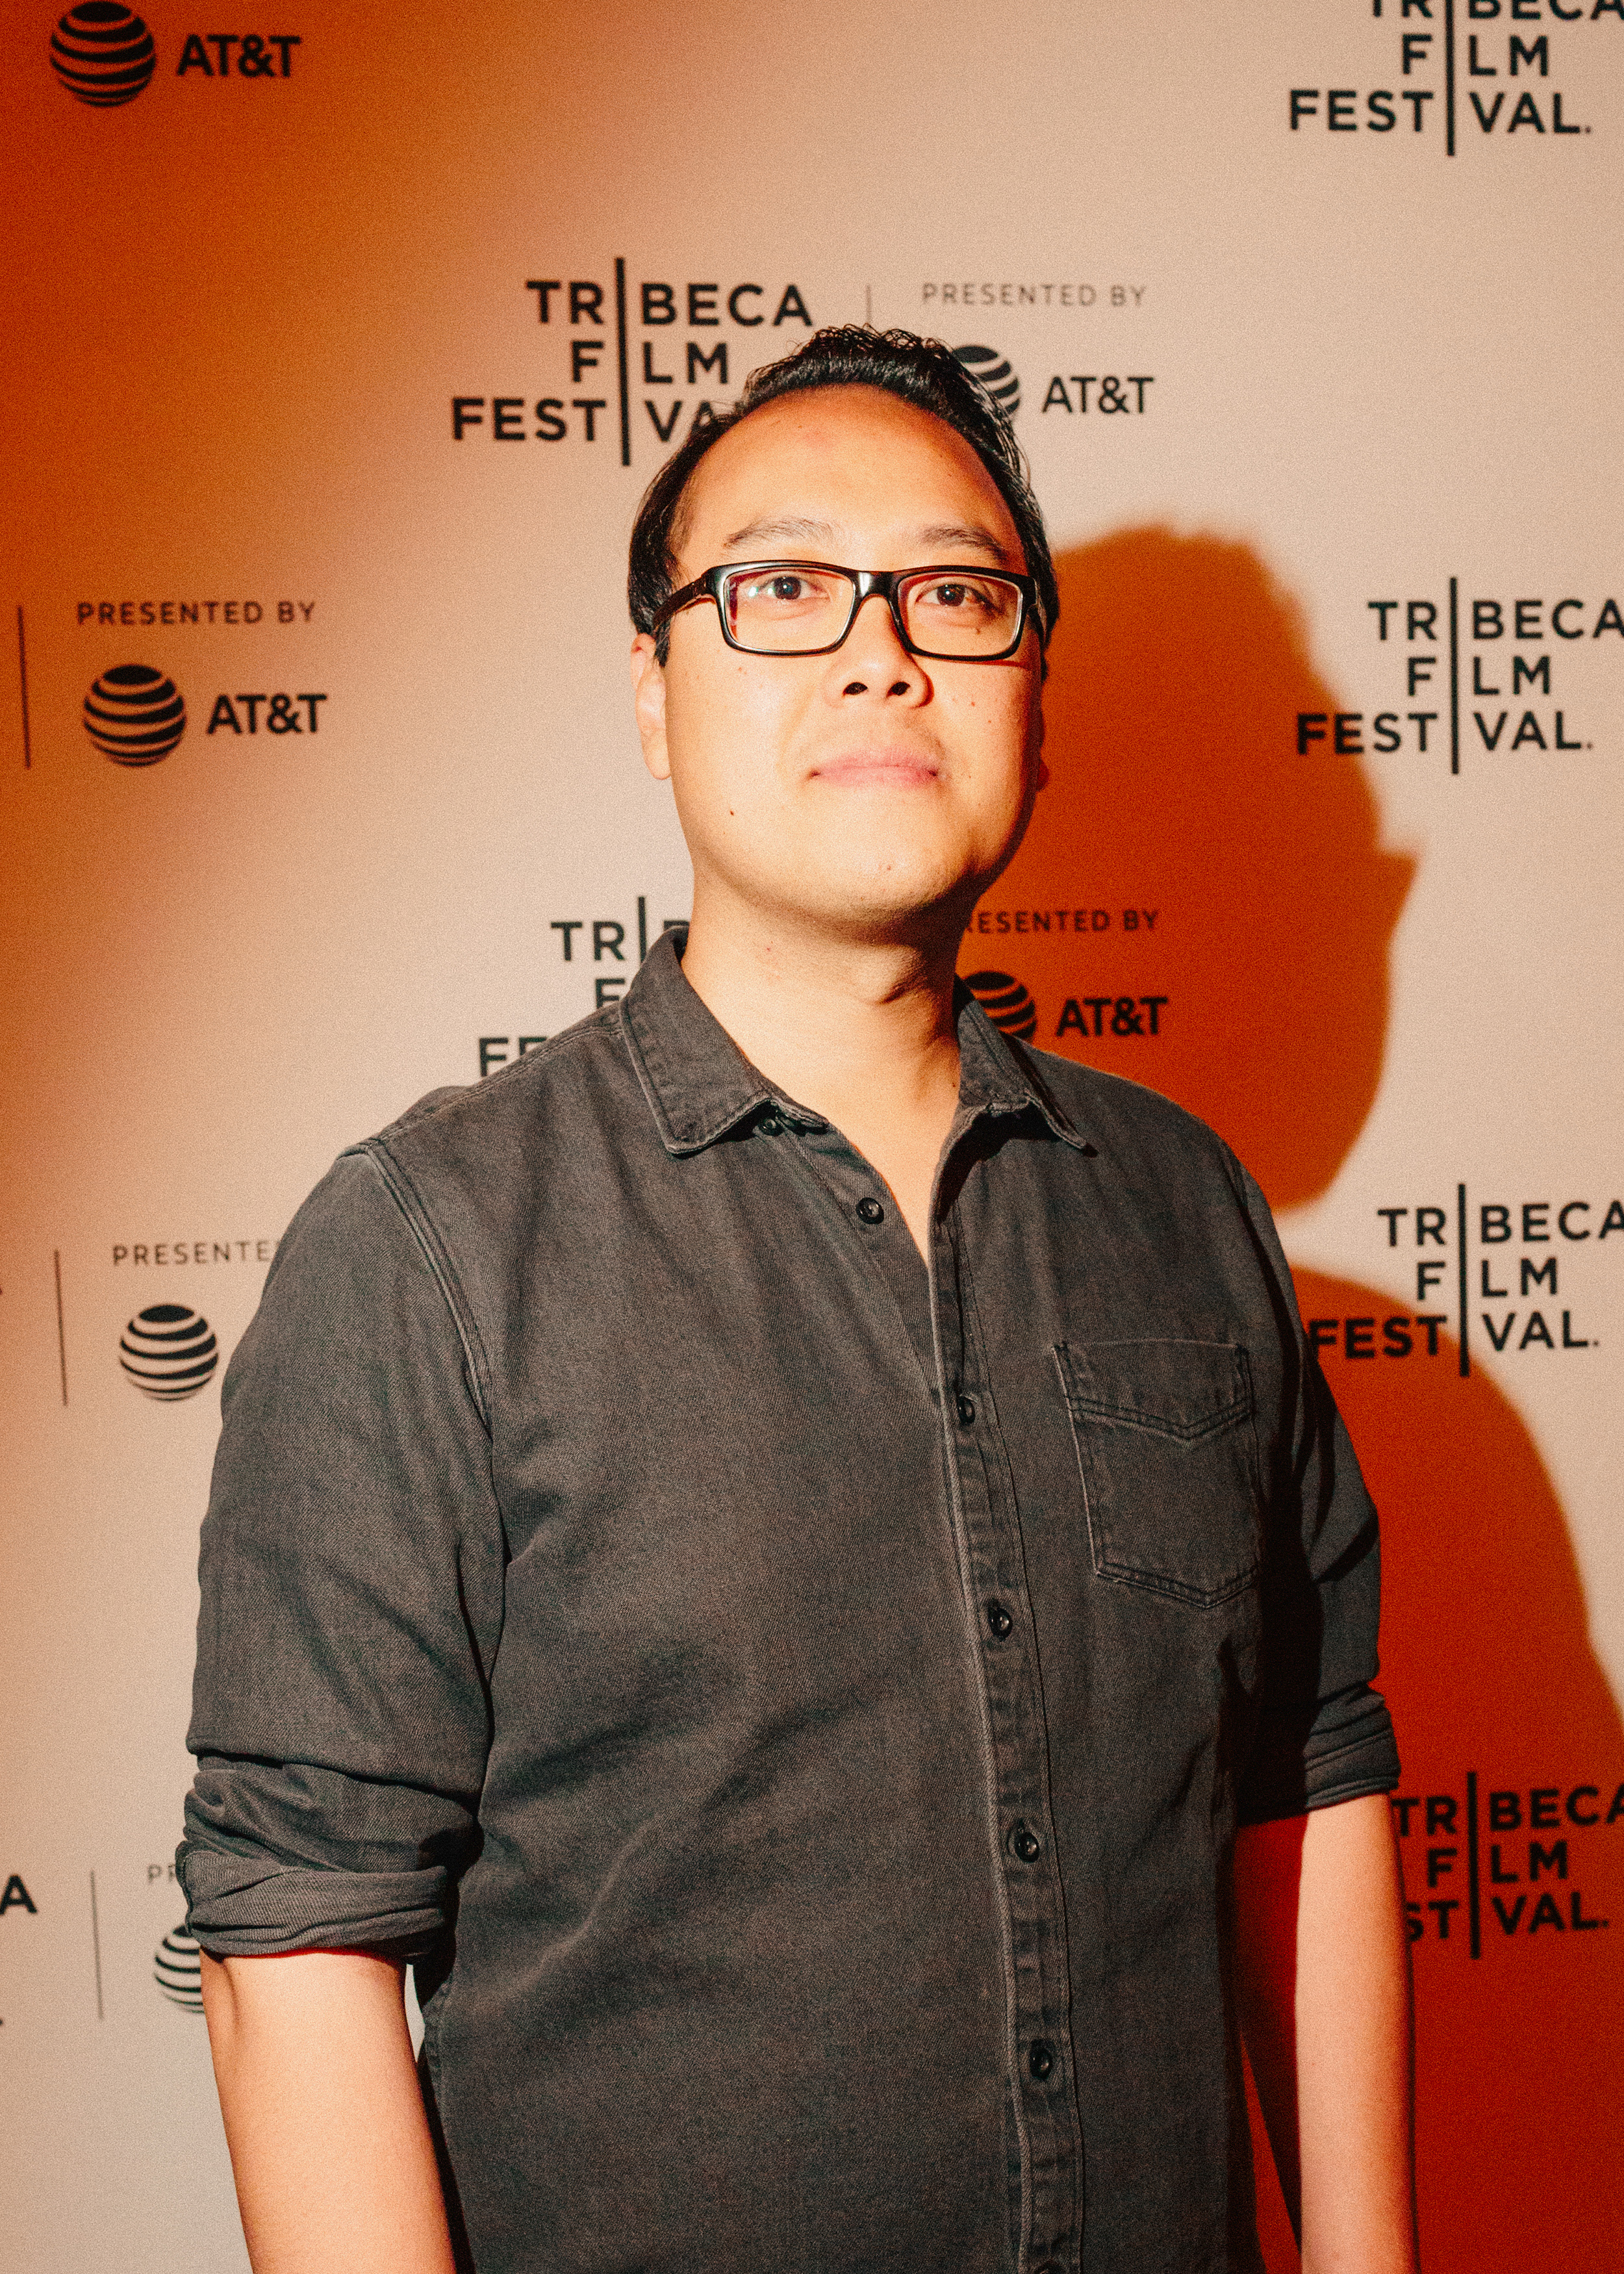 Tribeca Film Festival  New Filmmakers Party Bowery Hotel, New York, 2019